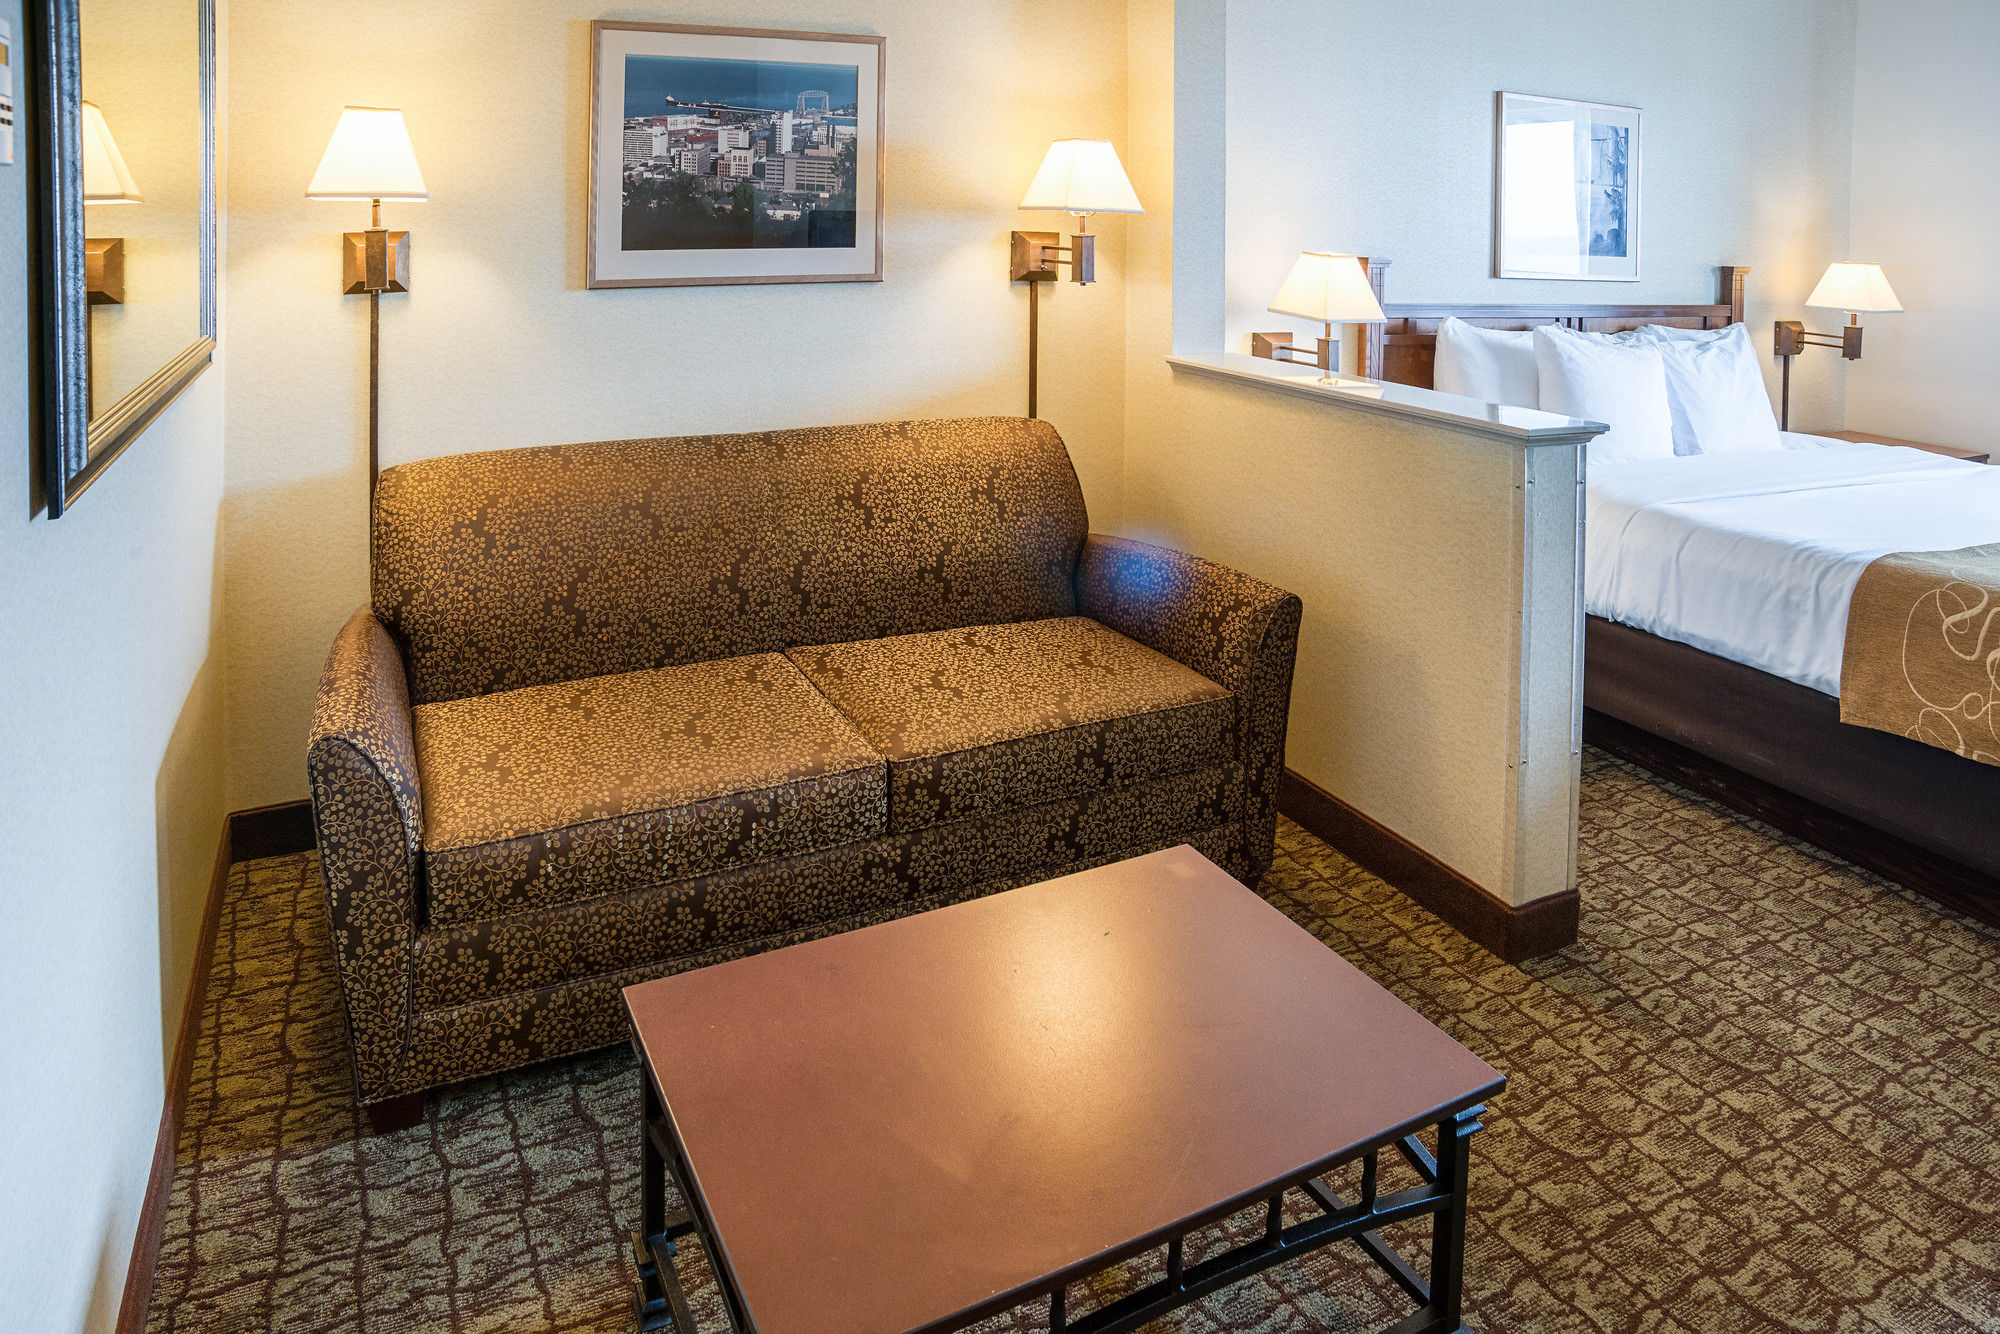 Deals Furniture Park Mn Resort Deals Reviews Park Rapids Usa Wotif Park Apartments Rentals